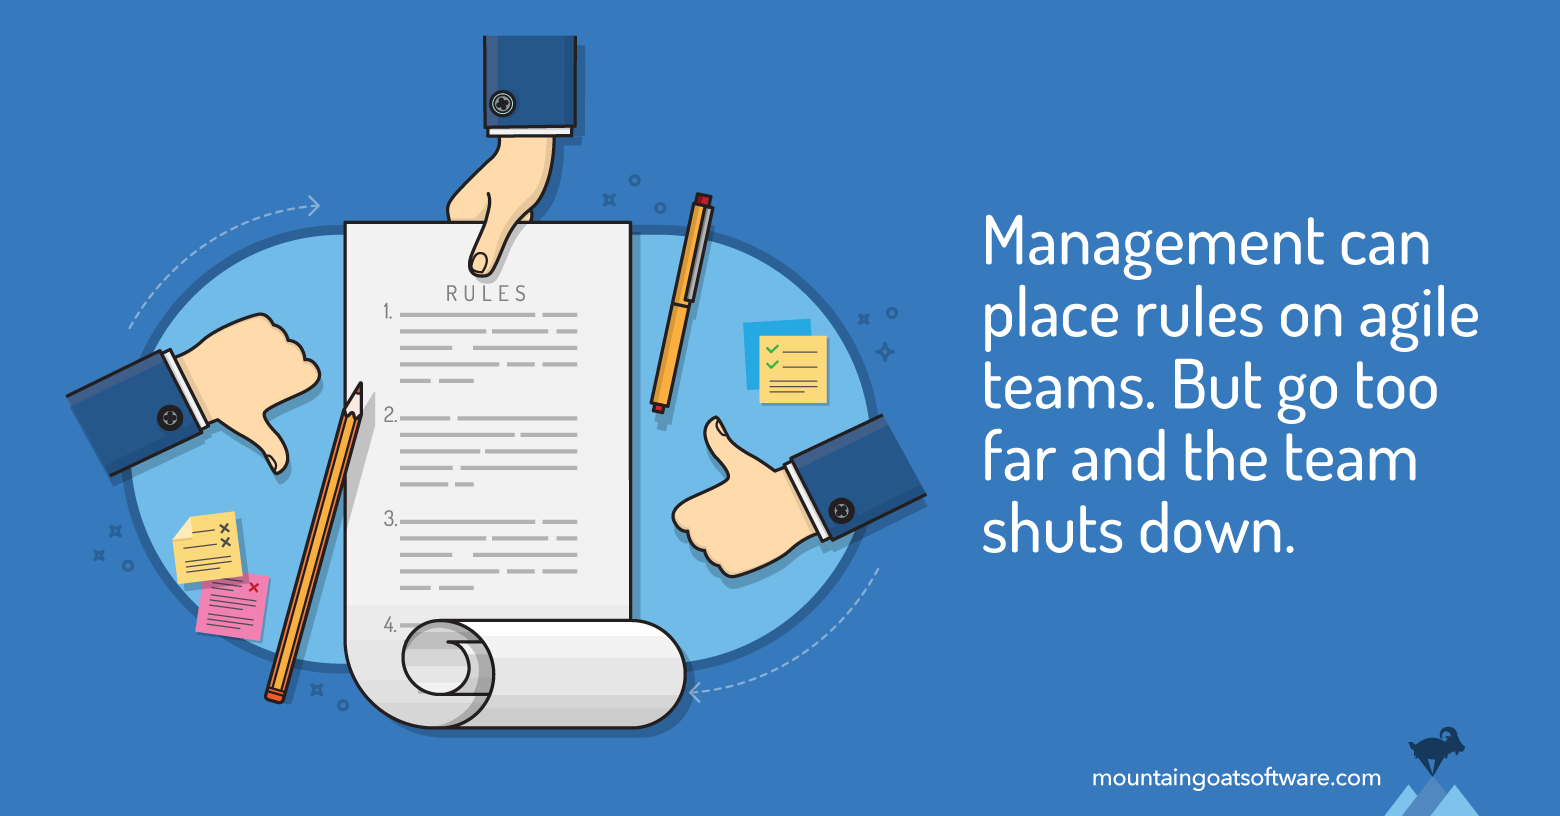 Placing Rules on Self-Organizing Teams